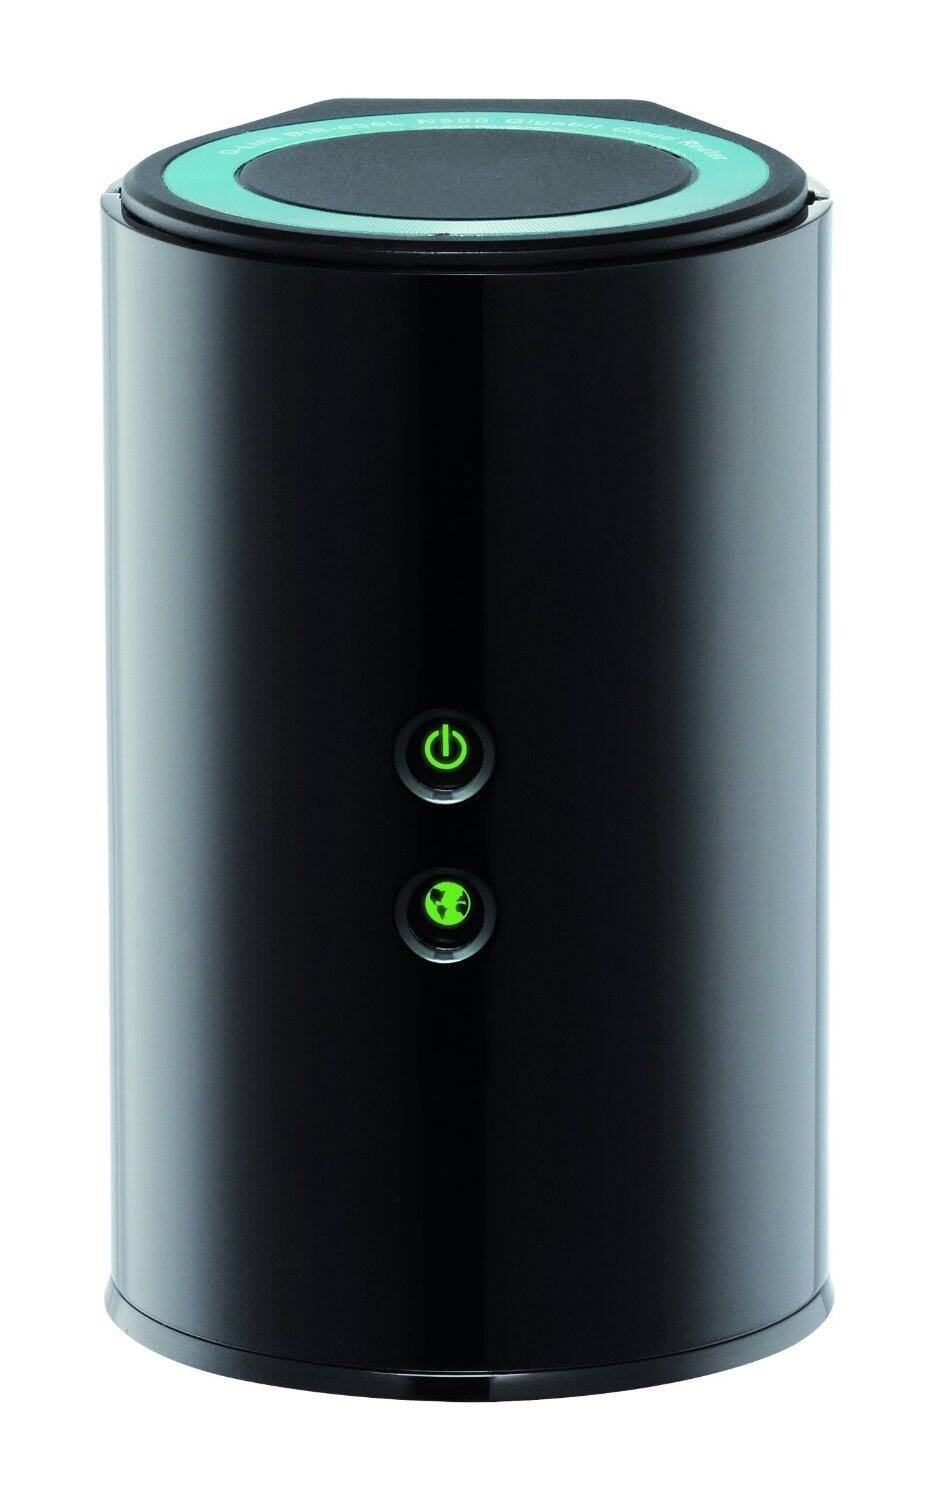 D-LINK Wireless N300 Gigabit Cloud Router @ Kmart for $19.99 with free store pick up